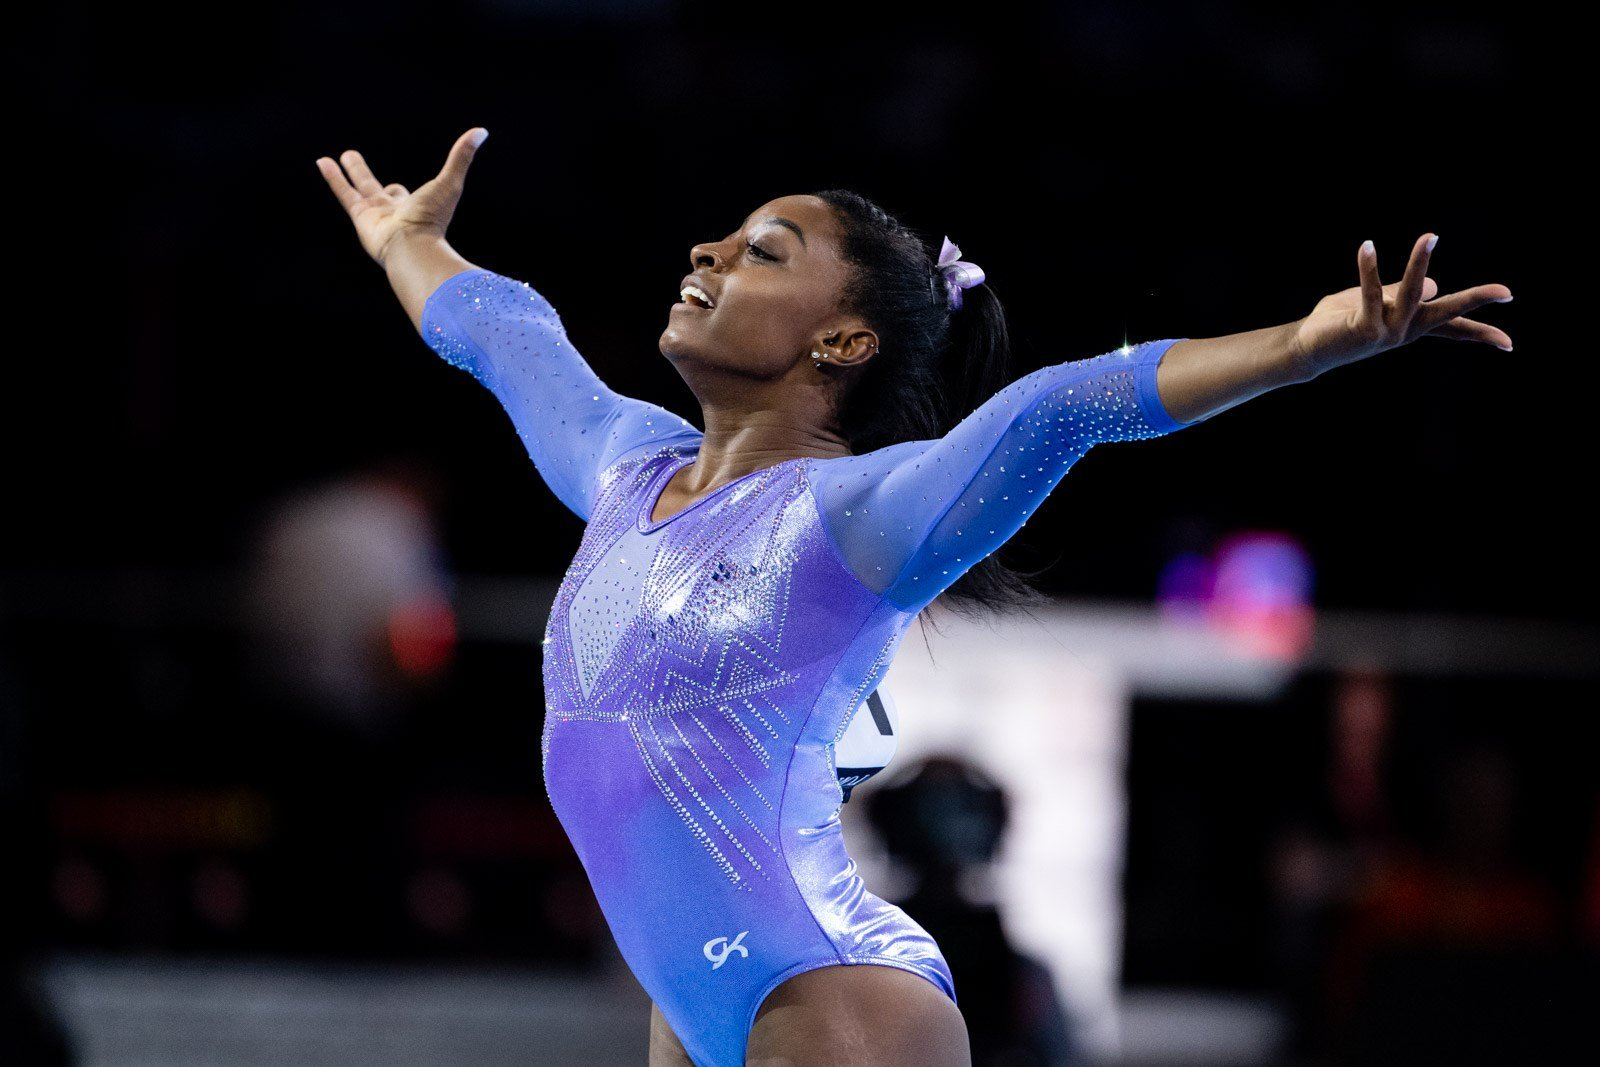 Simone Biles Shatters More Records At The 2019 Gymnastics World Championships